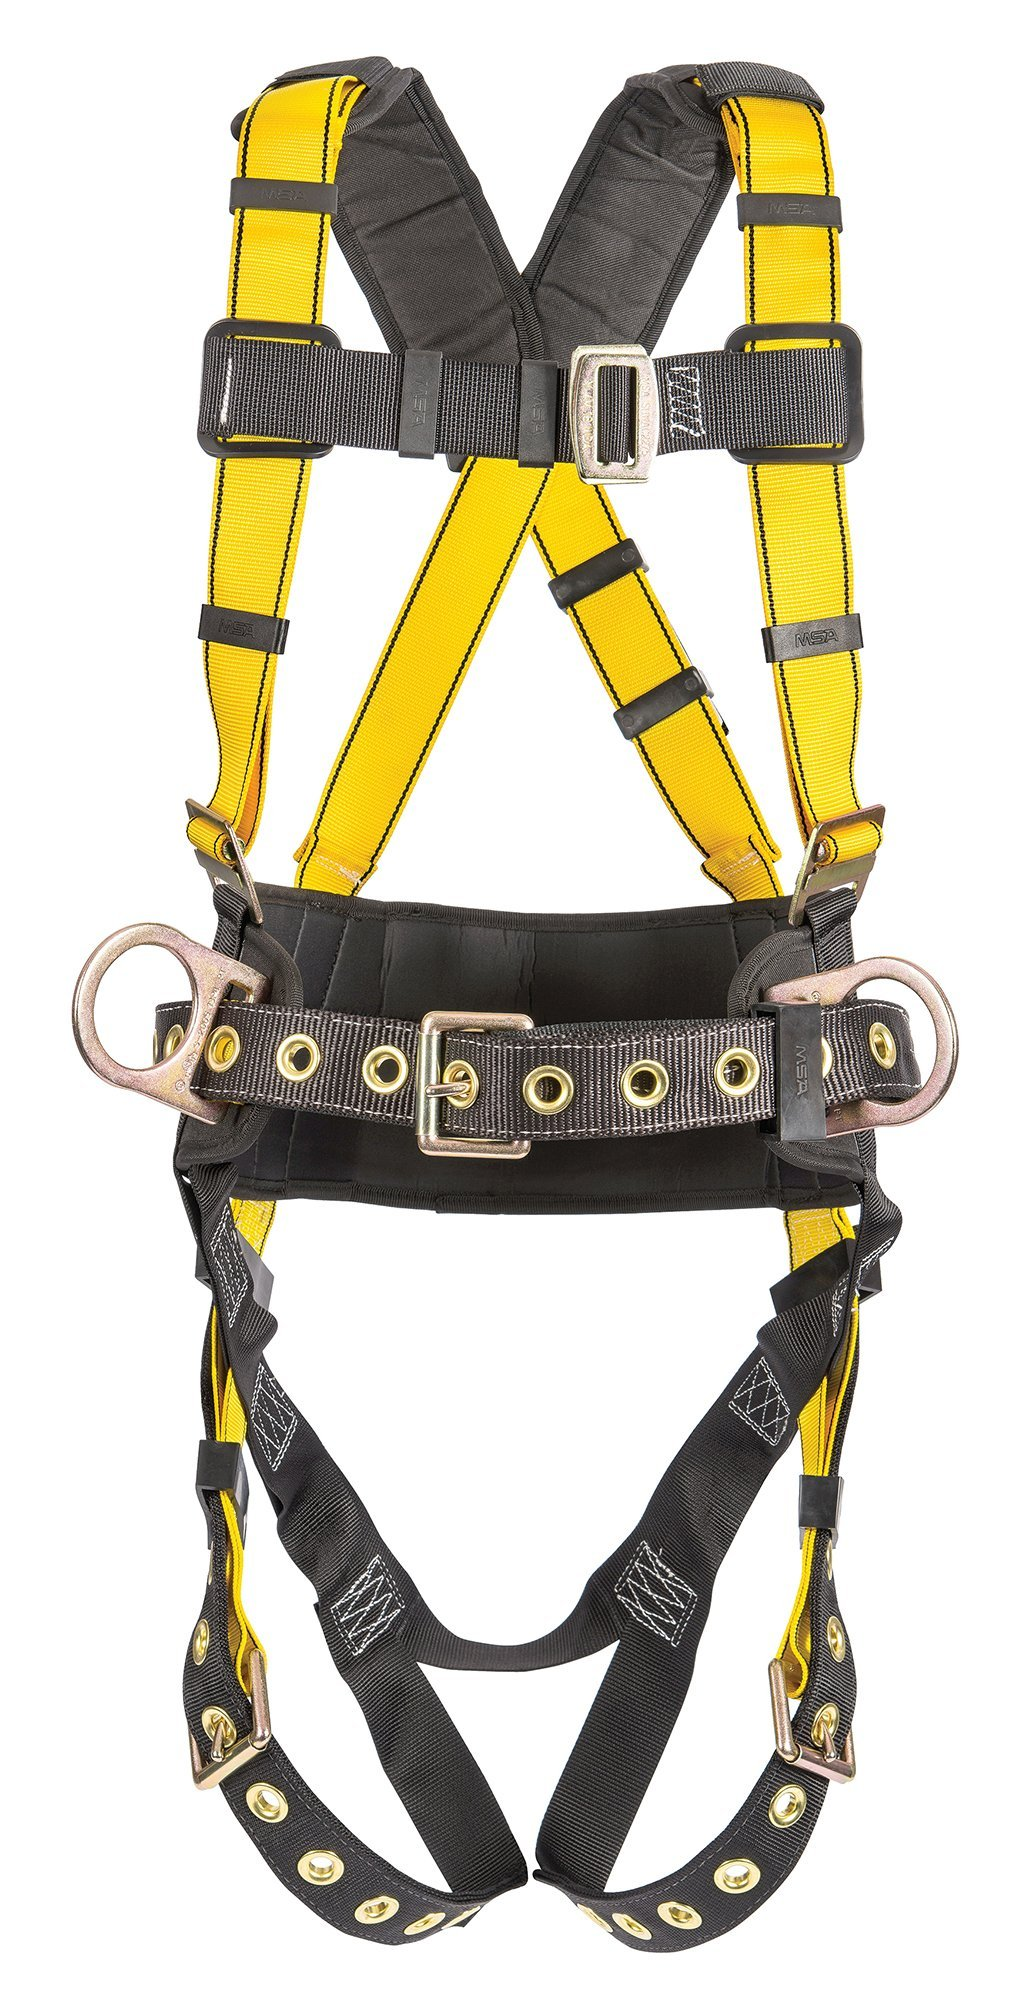 MSA 10077572 Workman Construction Harness with Back/Hip D-Rings, Tongue Buckle Leg Straps, Qwik-Fit Chest Strap Buckle, Integral Back Pad, Tool Belt and Shoulder Pads, X-Large